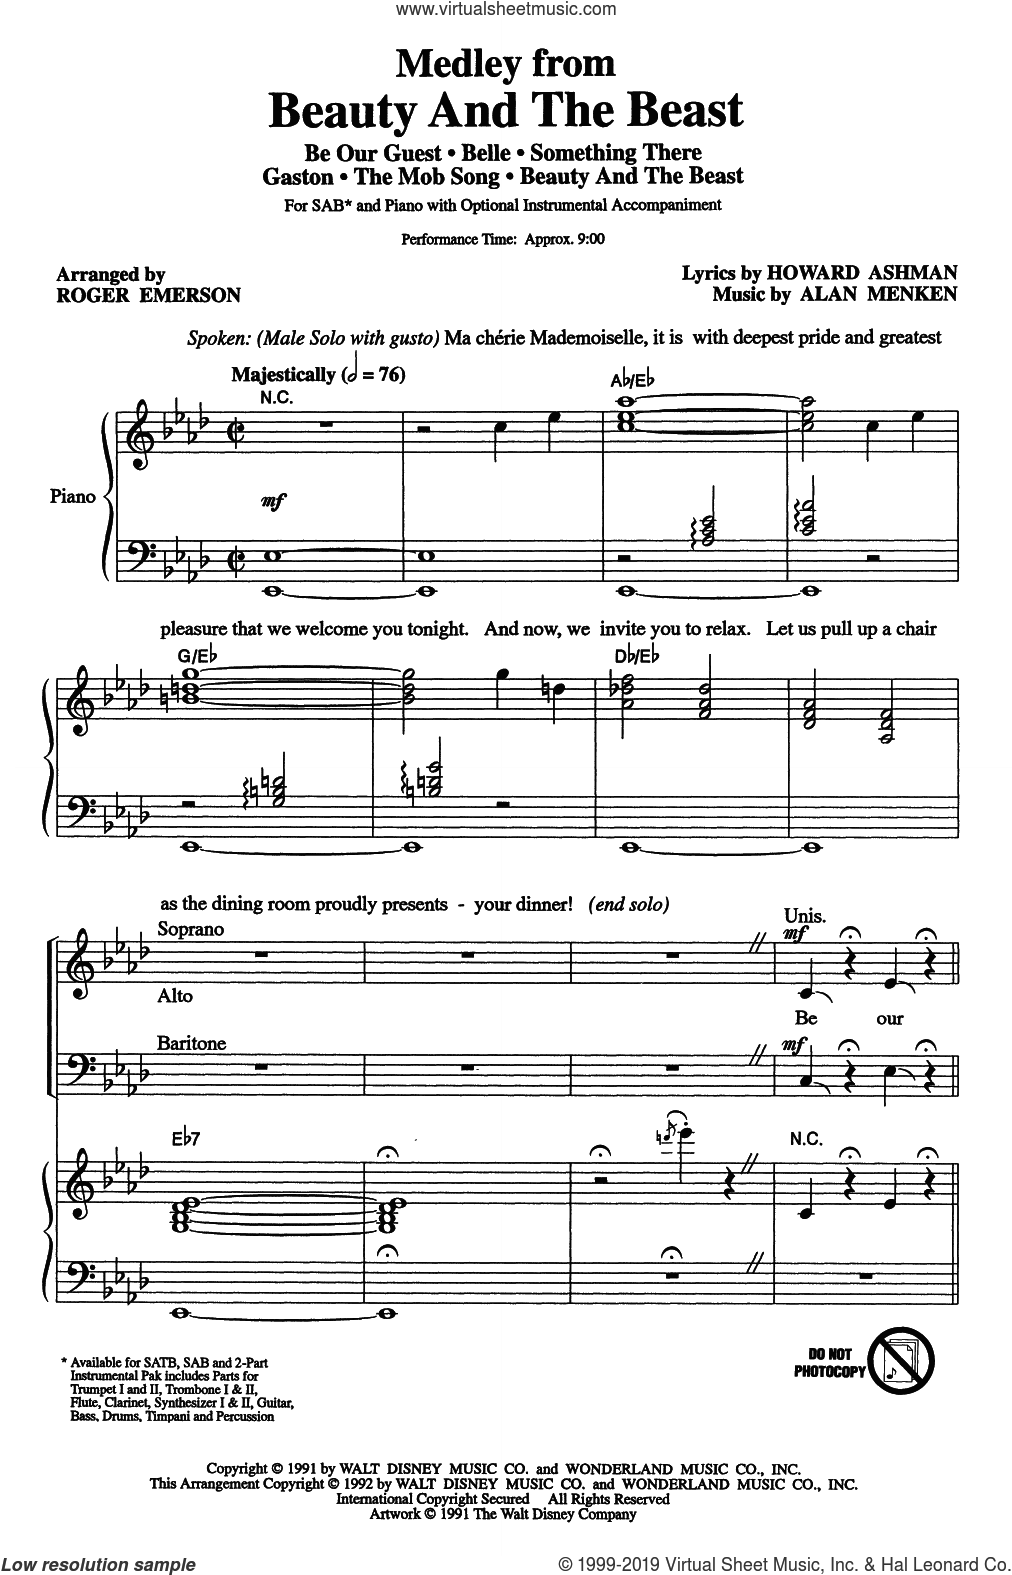 Beauty And The Beast (Medley) (arr. Roger Emerson) sheet music for choir (SAB: soprano, alto, bass) by Alan Menken, Roger Emerson, Alan Menken & Howard Ashman and Howard Ashman, intermediate skill level